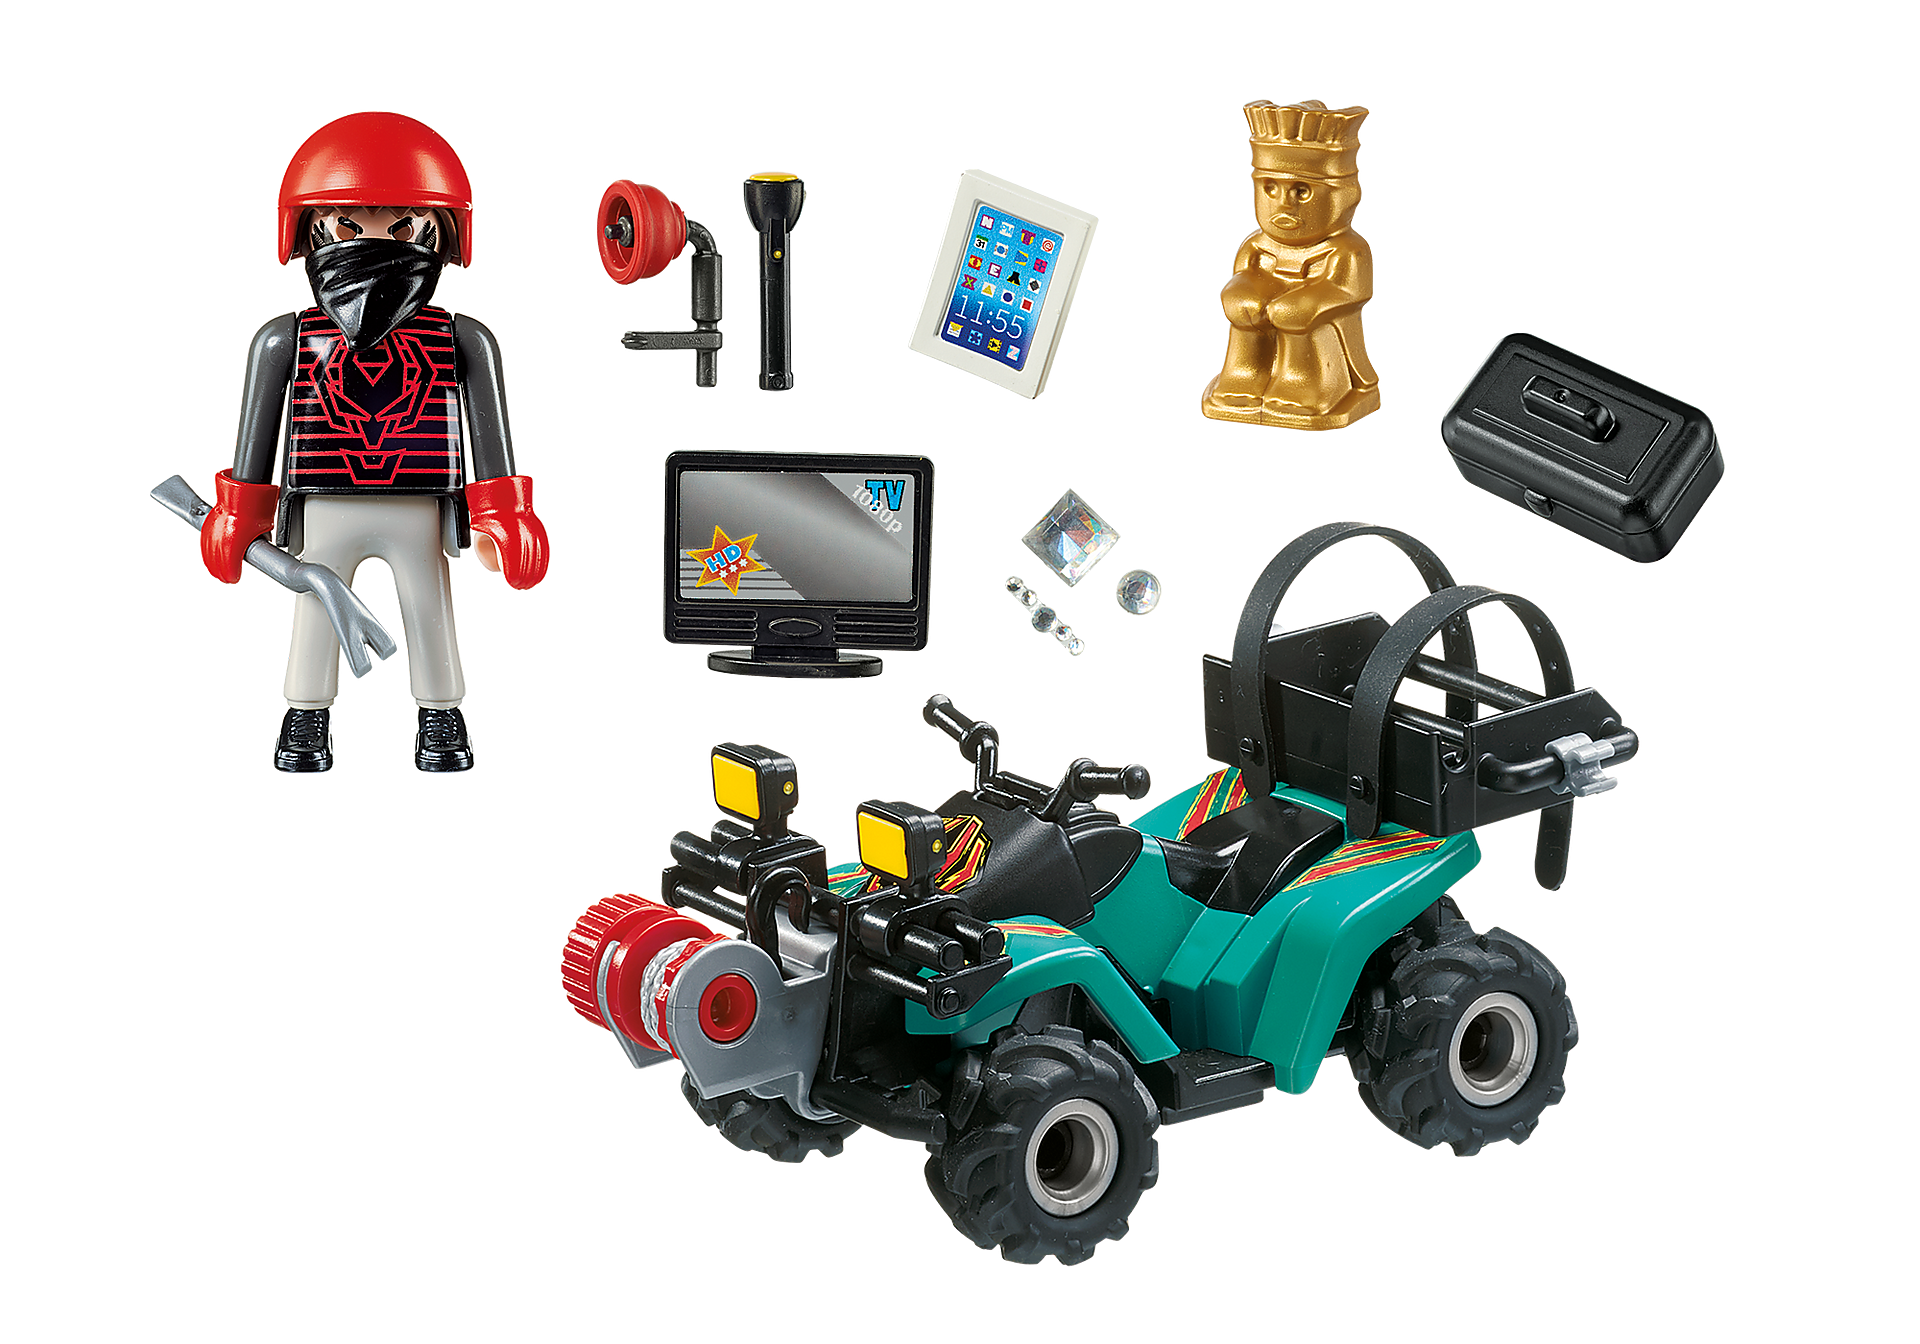 http://media.playmobil.com/i/playmobil/6879_product_box_back/Przestępca z quadem